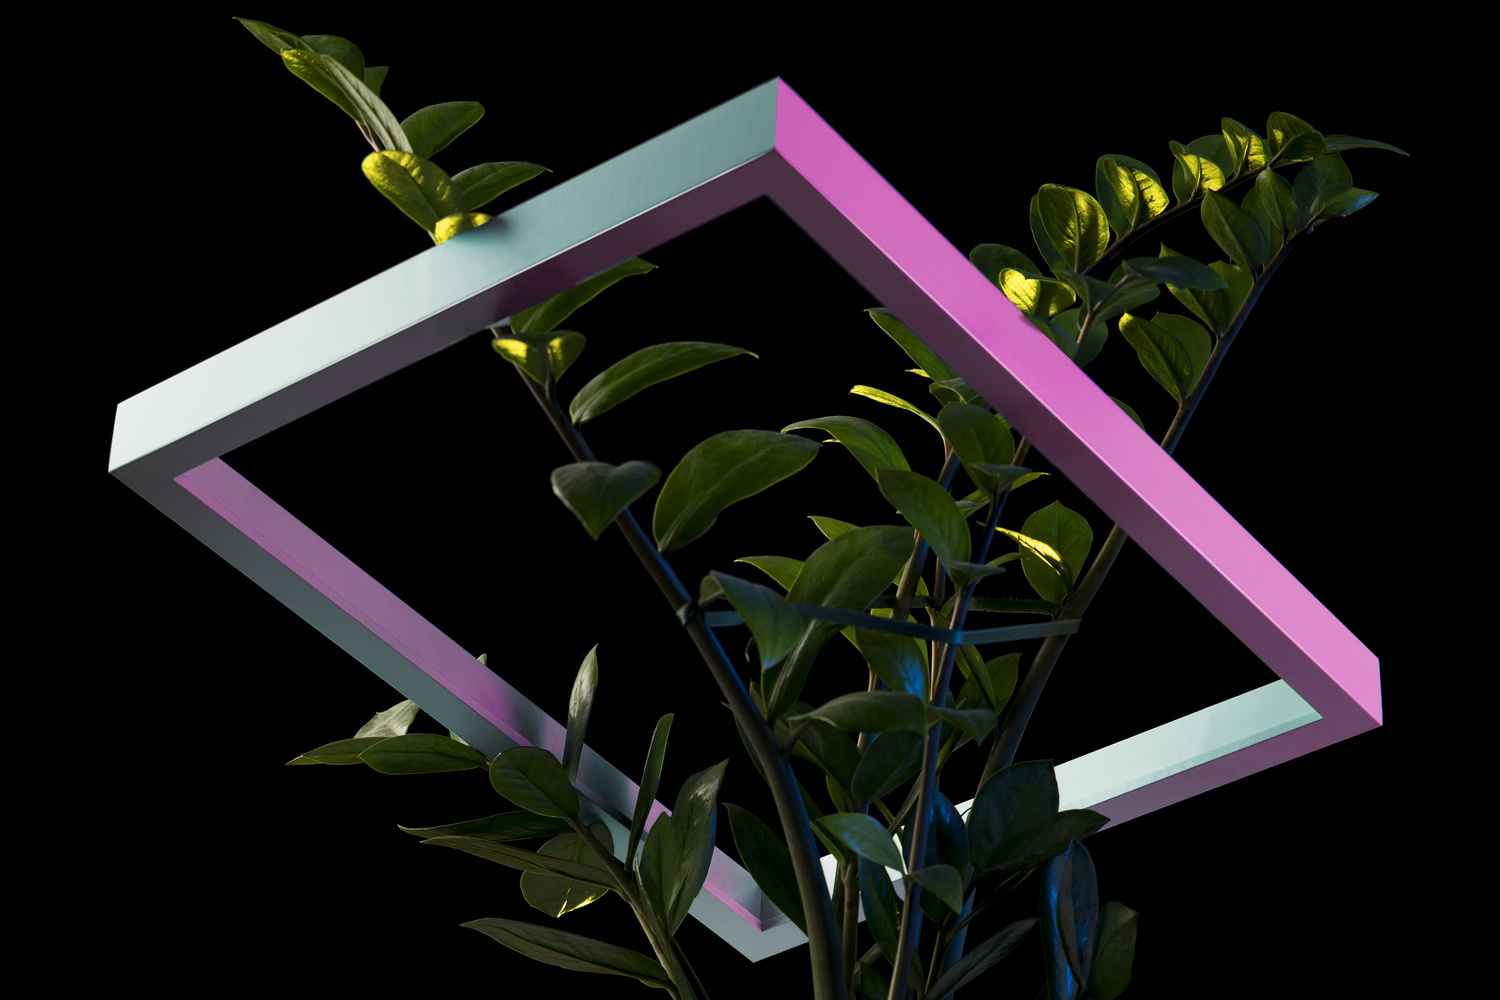 rectangle plant by Ciro Guastamacchia